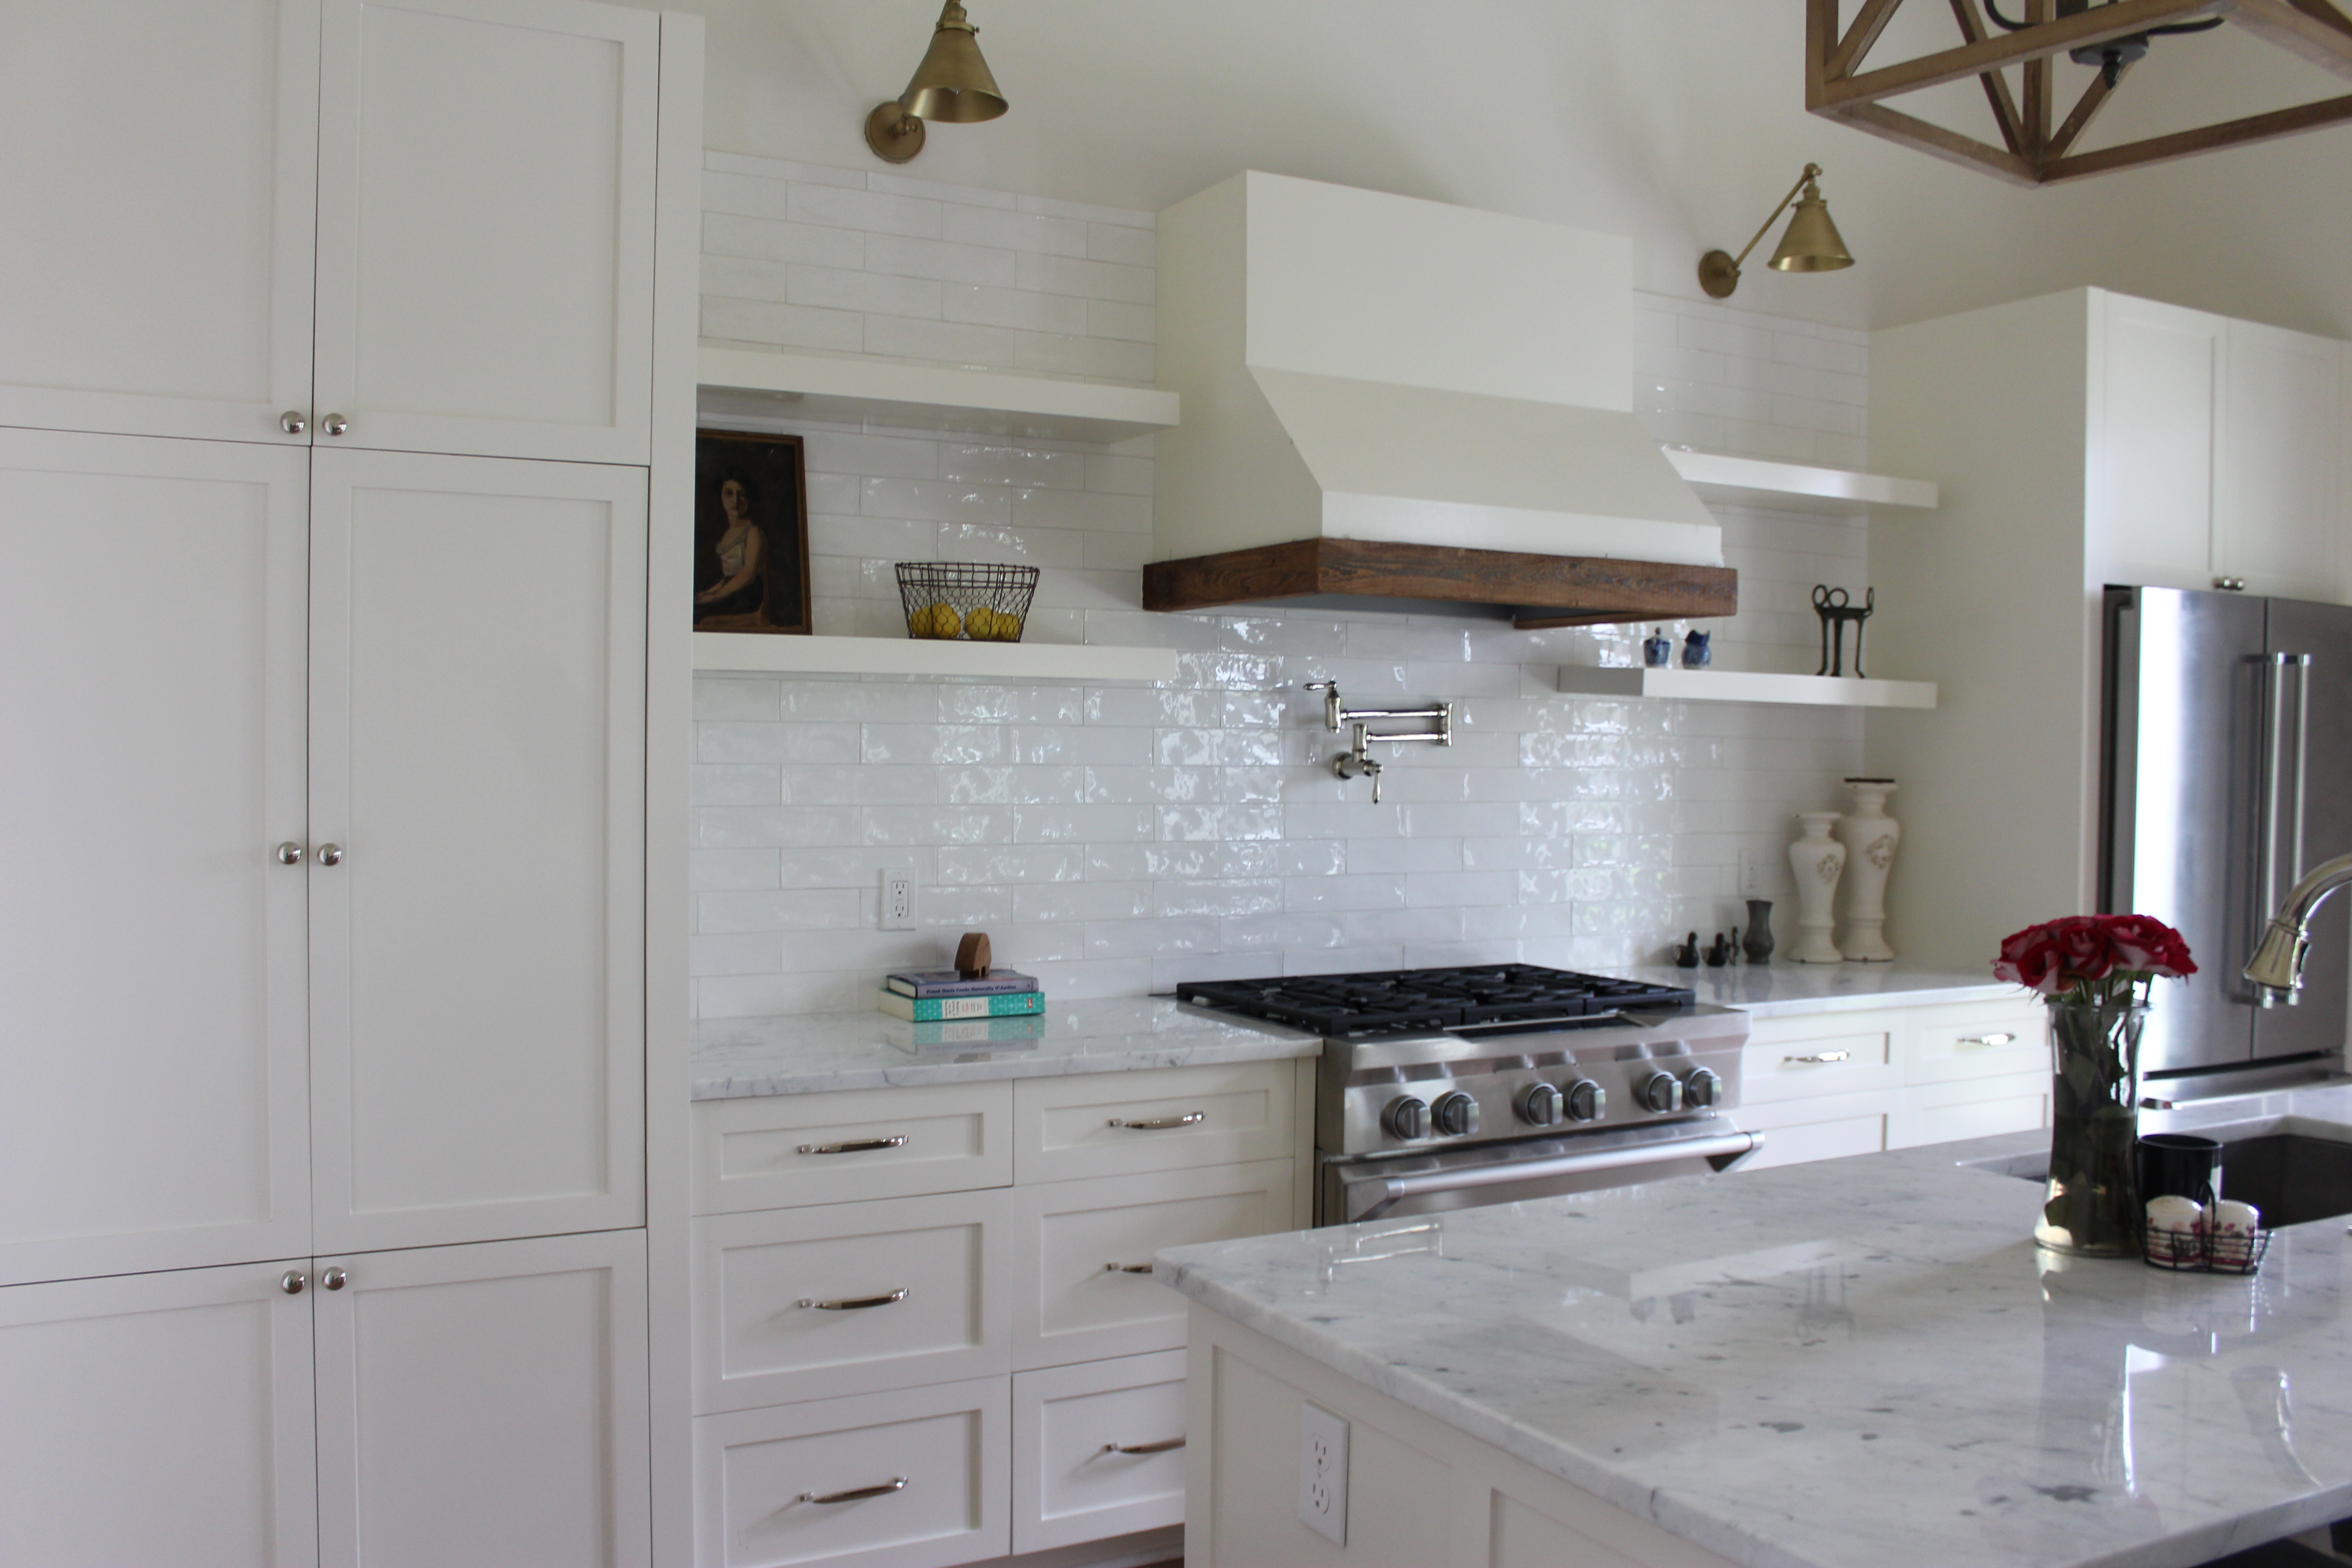 Jason Bertoniere Painting Contractor Blog Archive Painting Your Cabinets Is The Best Way To